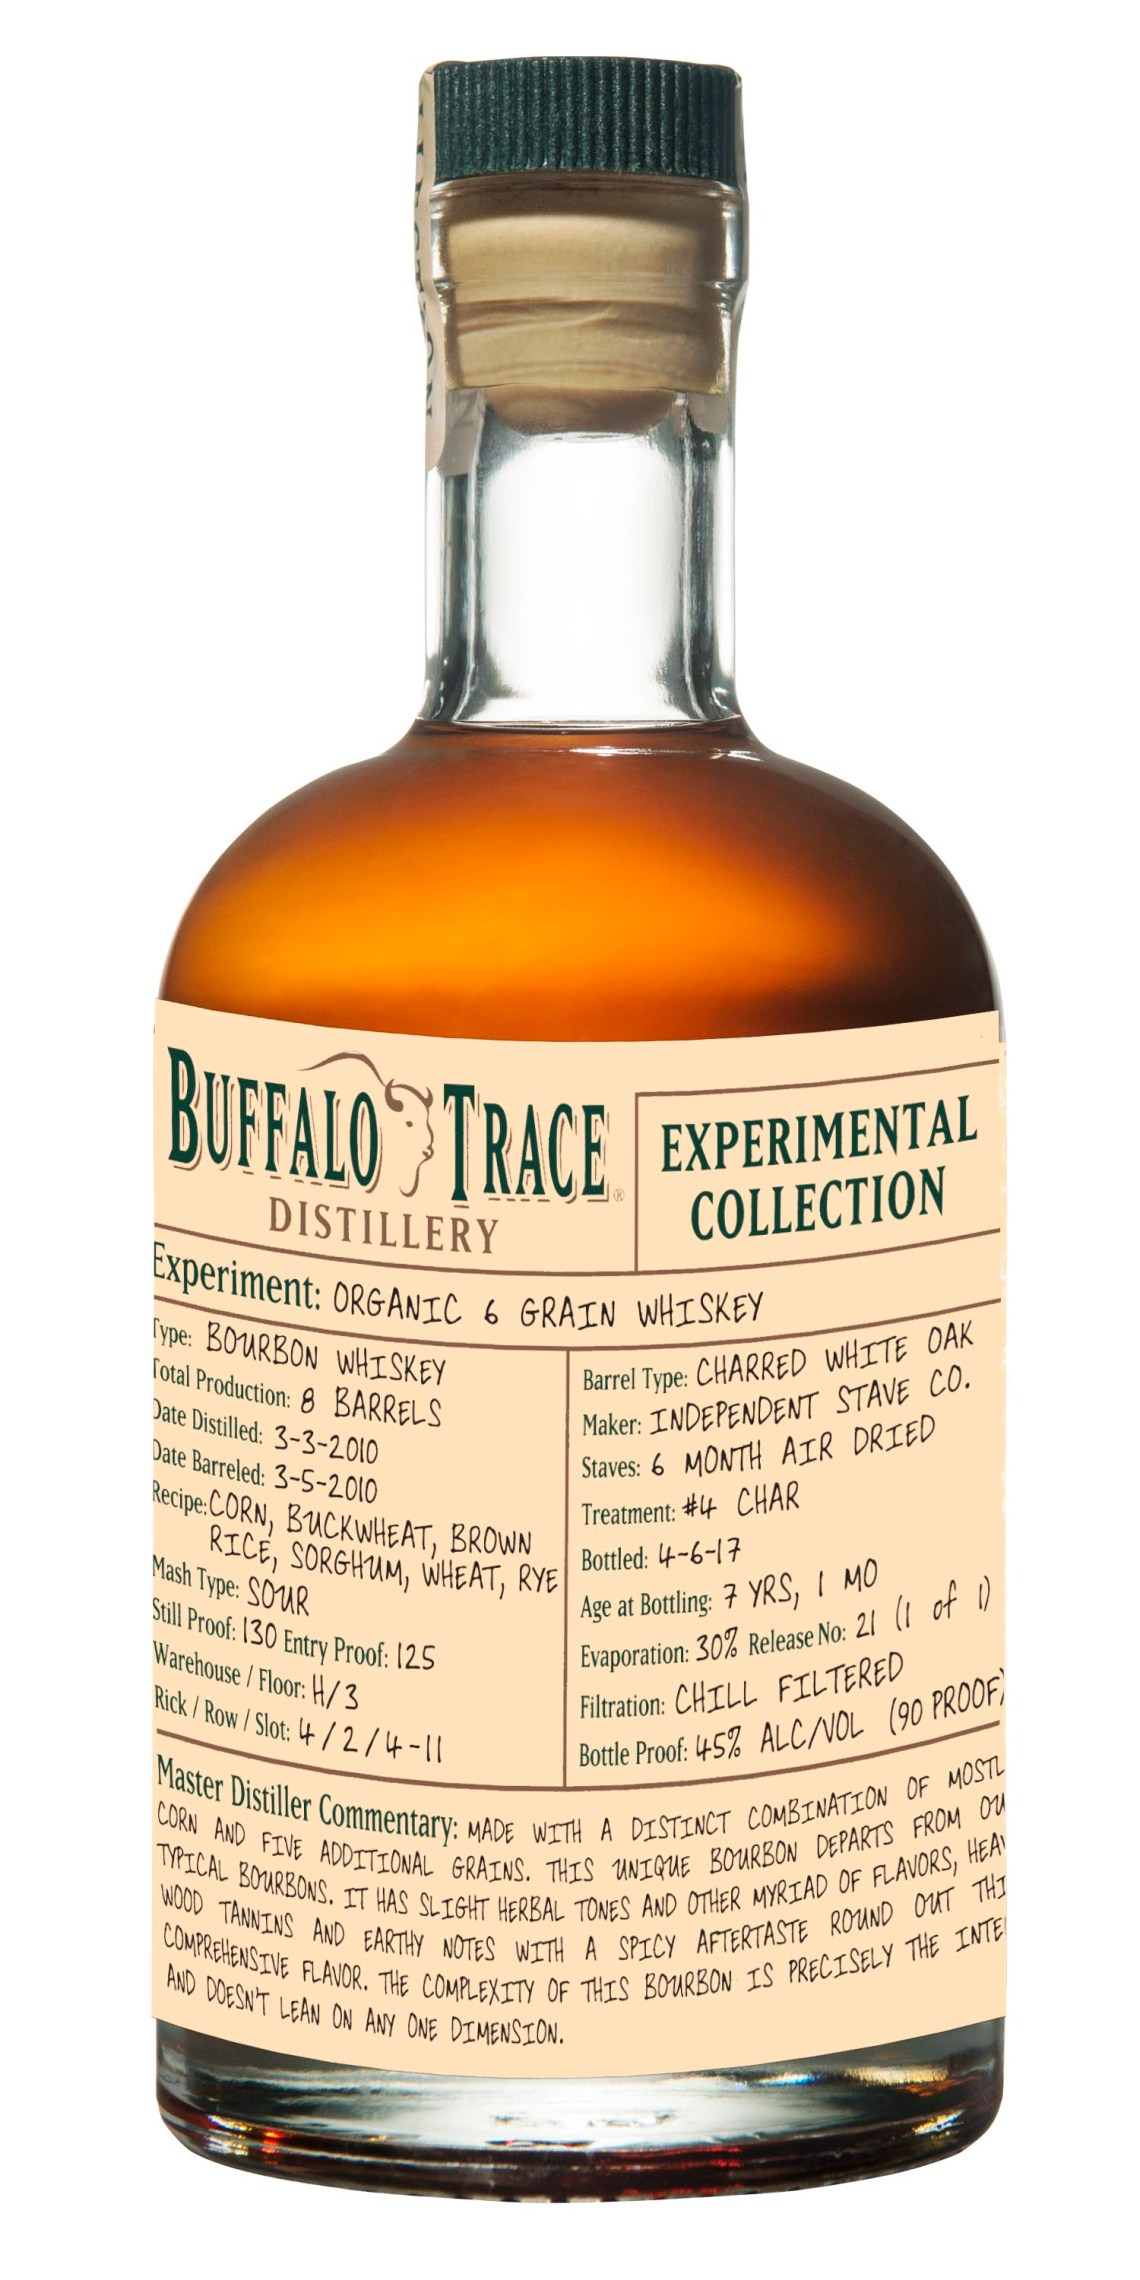 Buffalo Trace Experimental Collection - Organic 6 Grain Whiskey